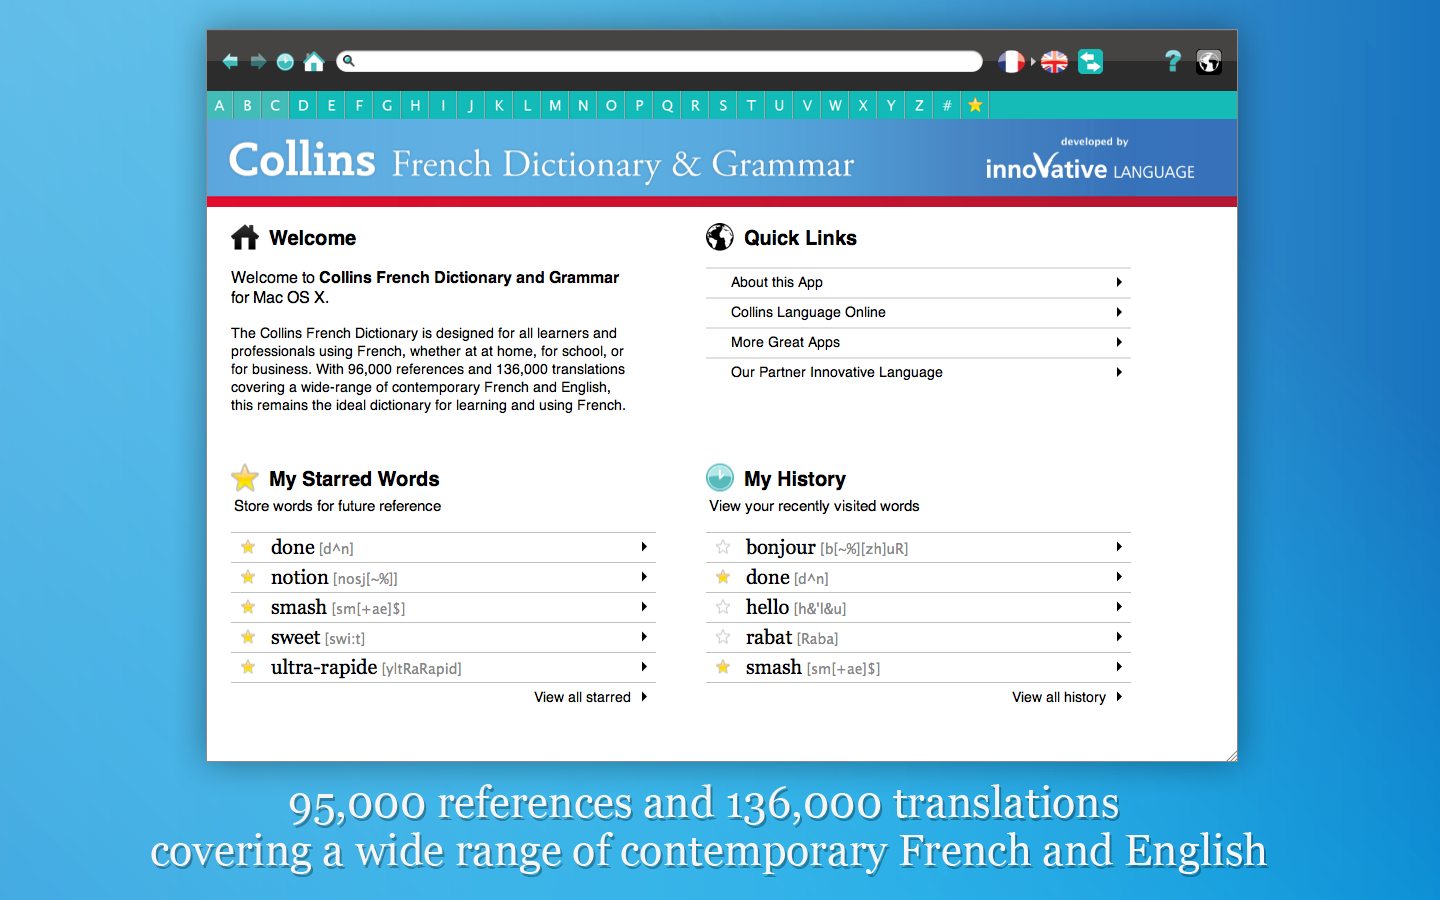 Screenshot 1 - Collins French Dictionary